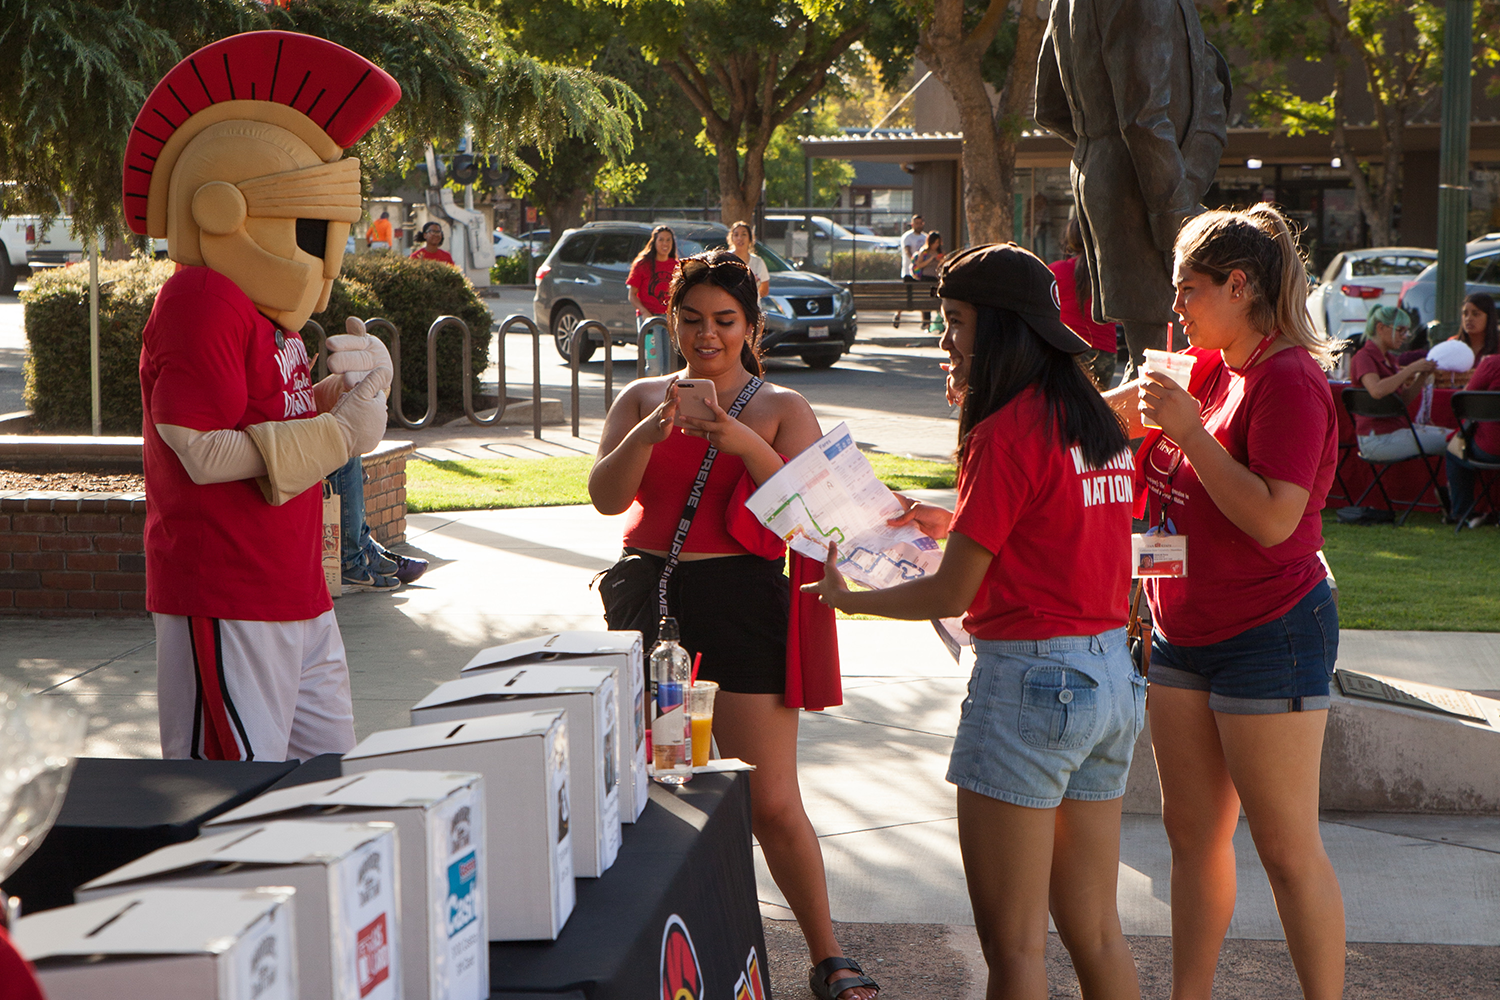 students conversing with Titus mascot